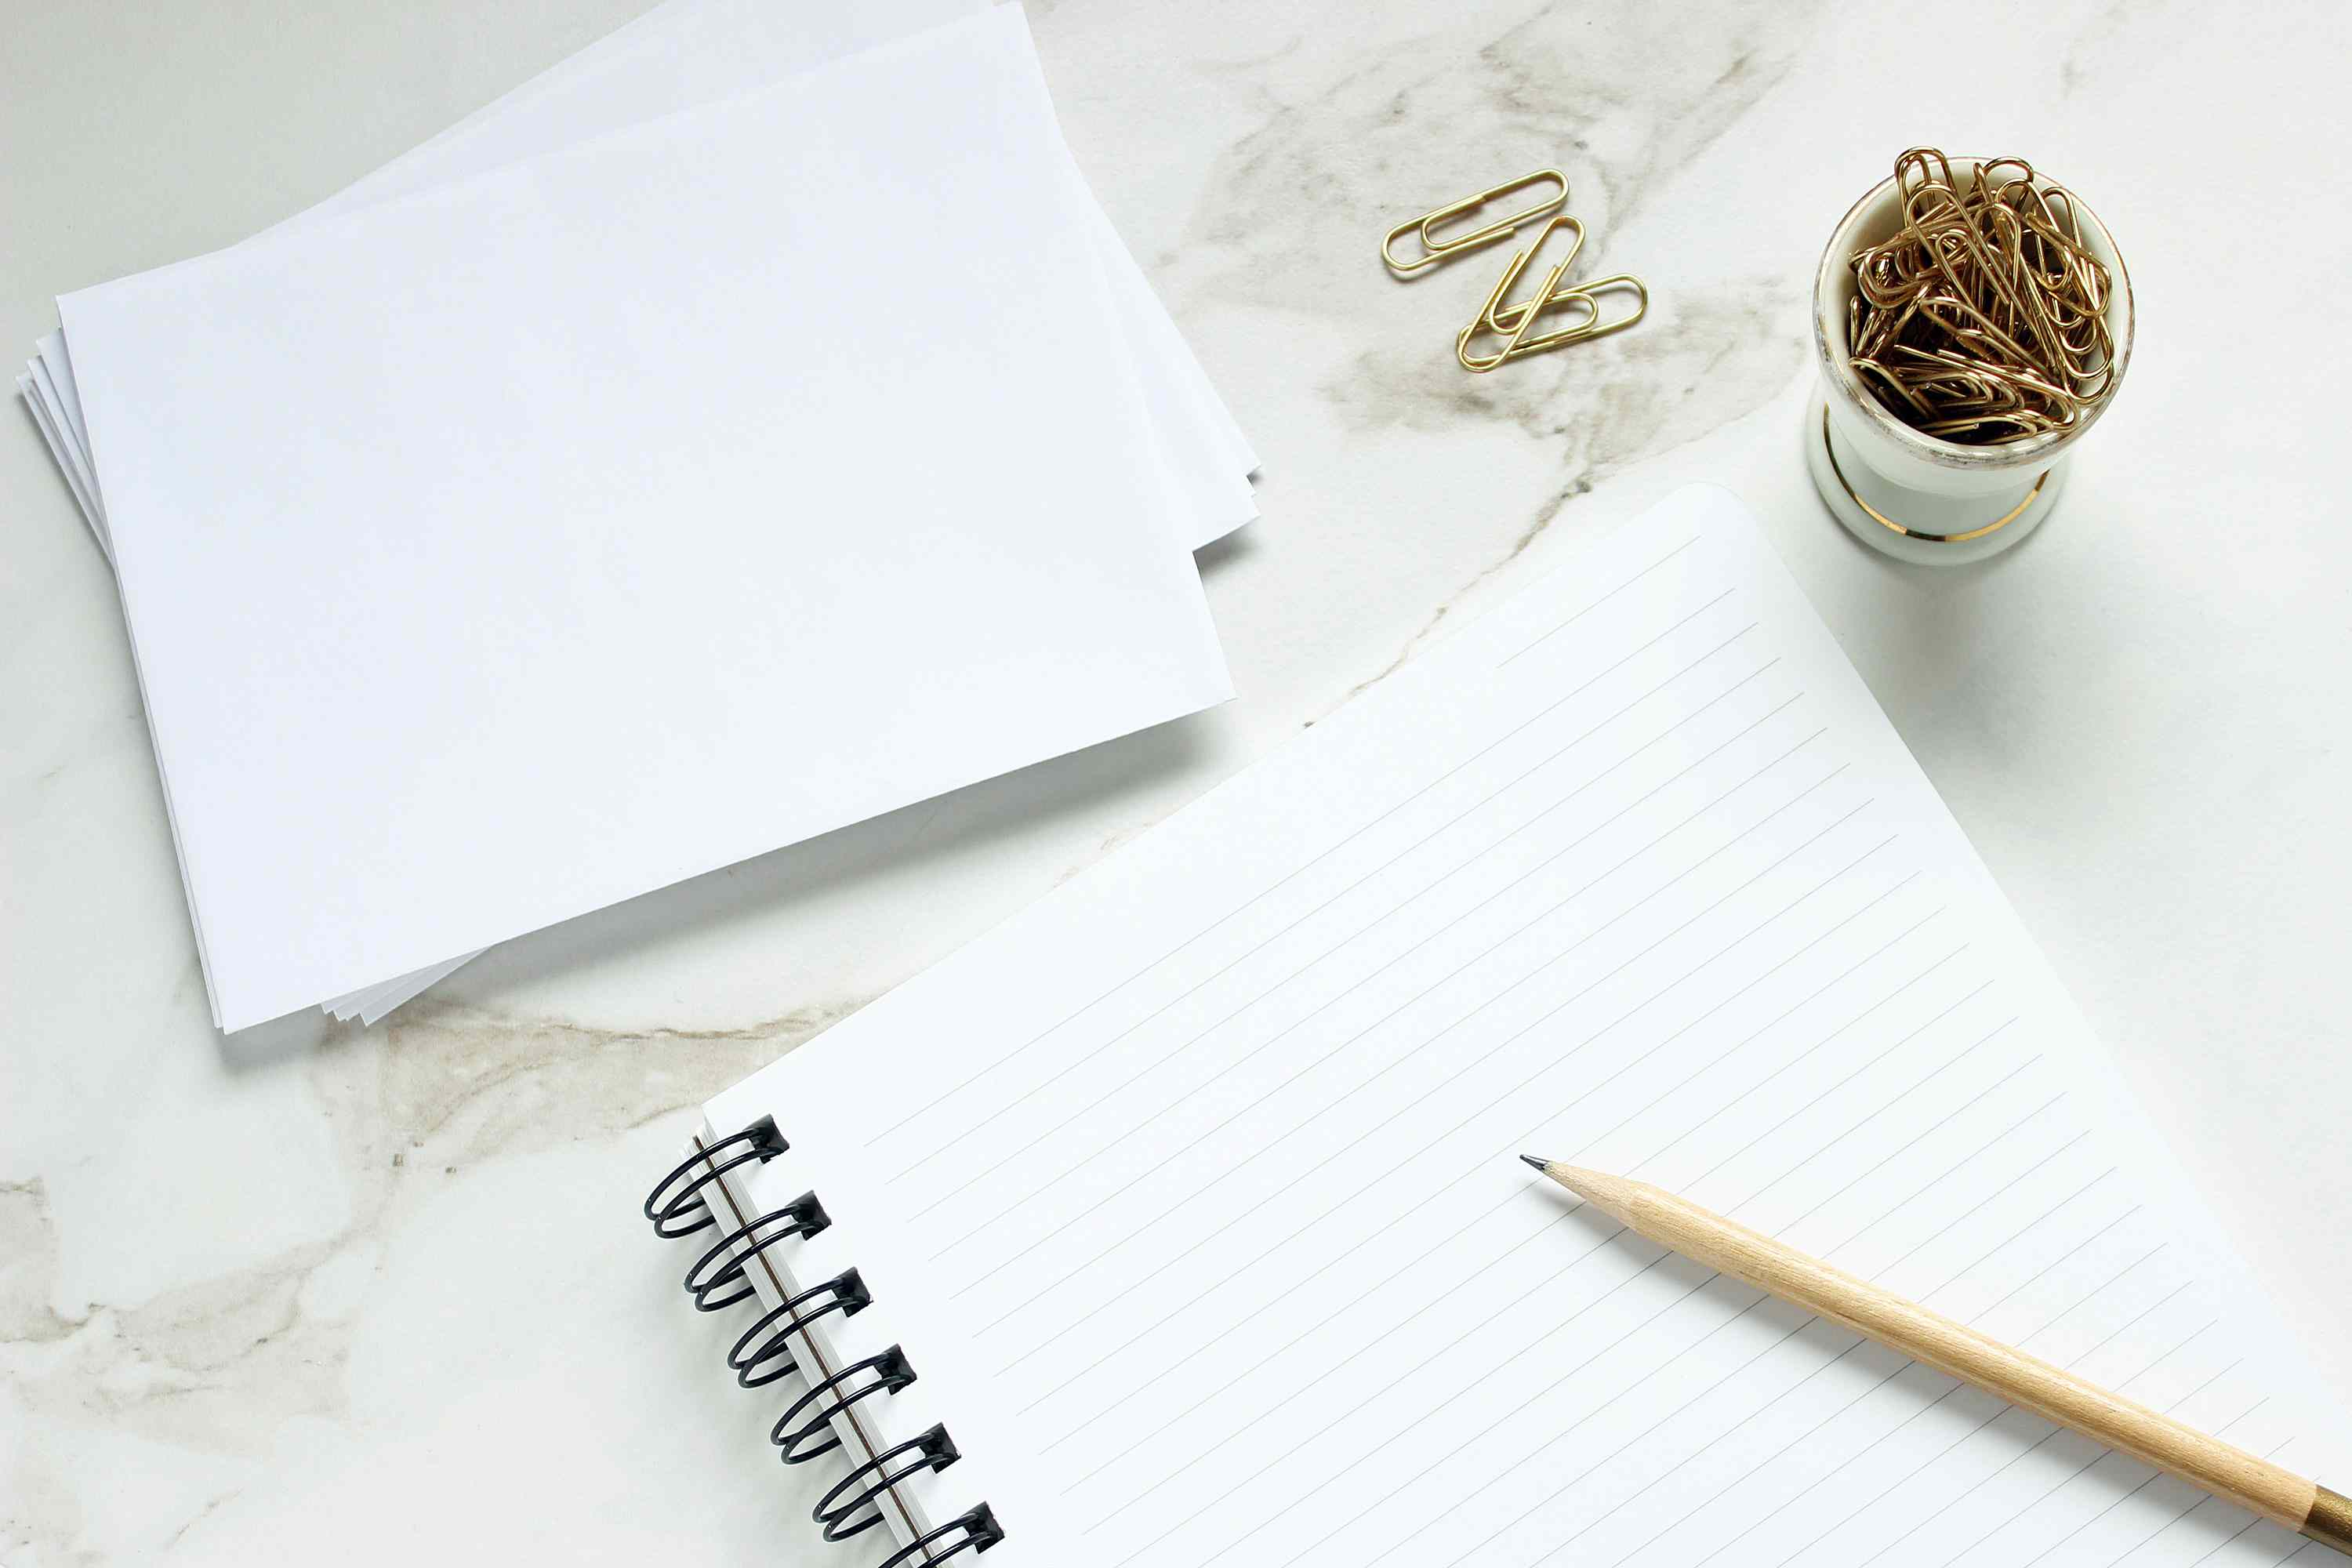 Stationery on marble countertop and gold paperclips